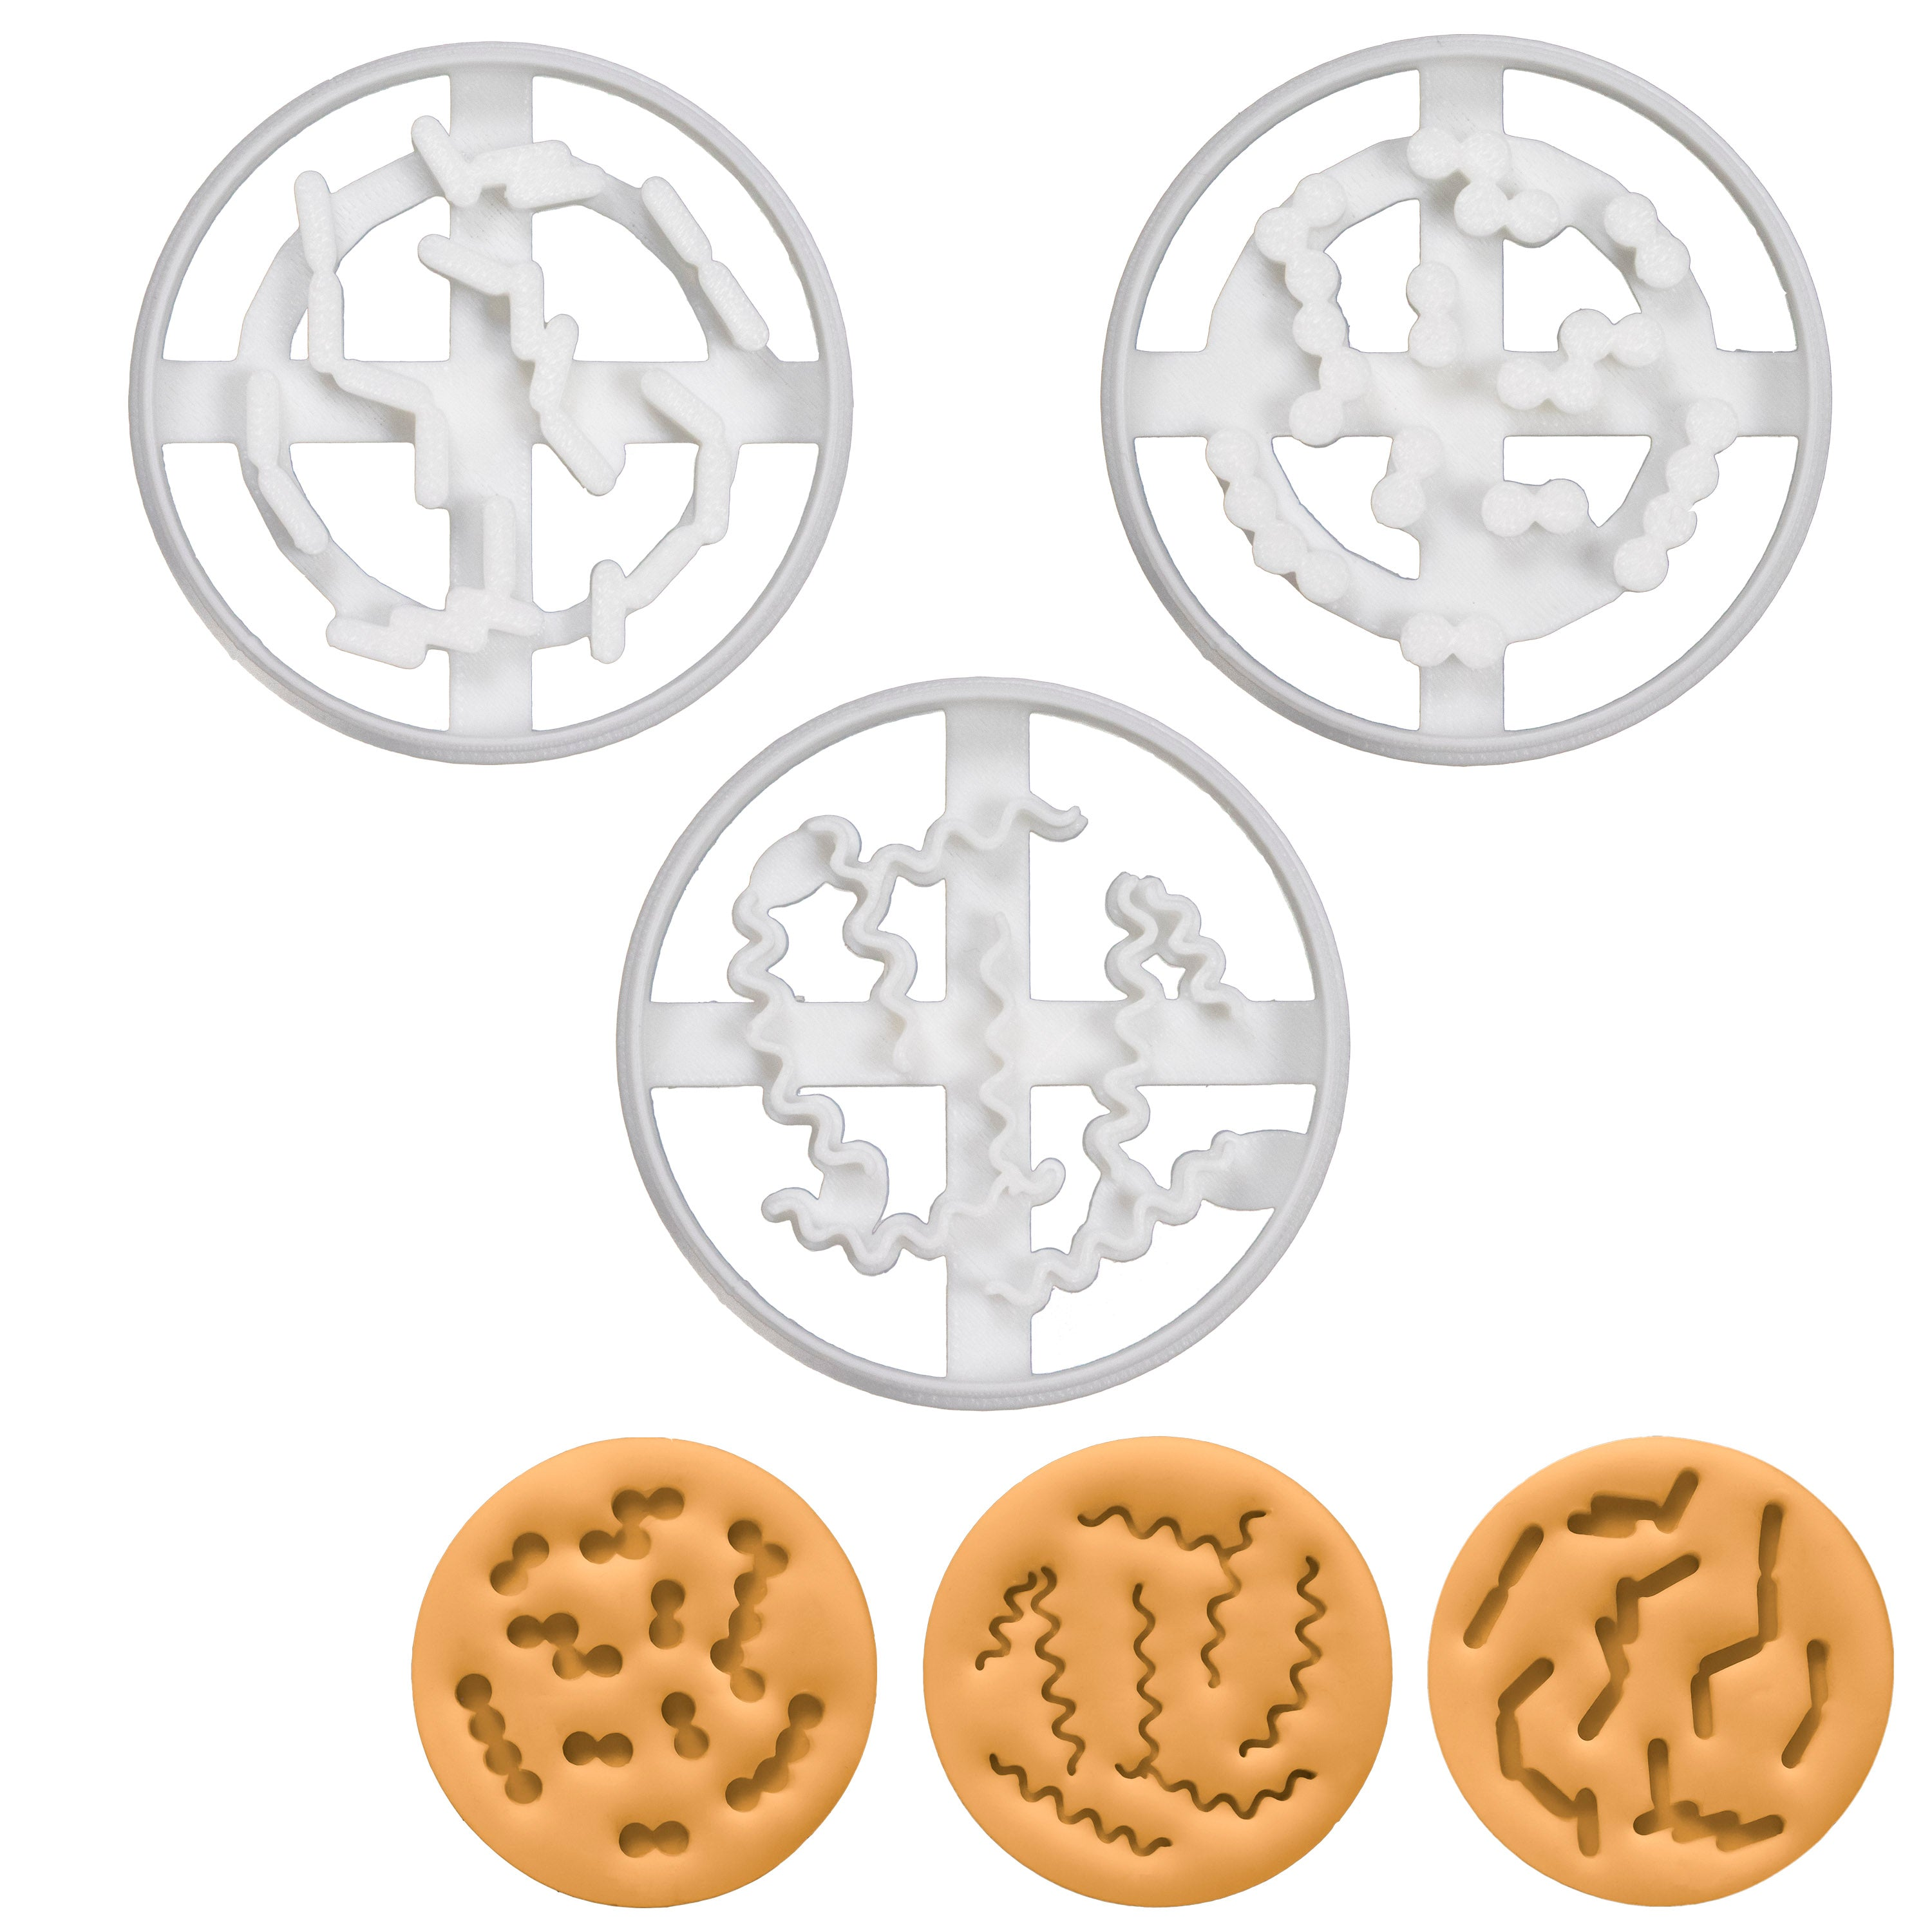 Set of 3 Bacteria cookie cutters (Bacillus, Coccus, & Spiral)